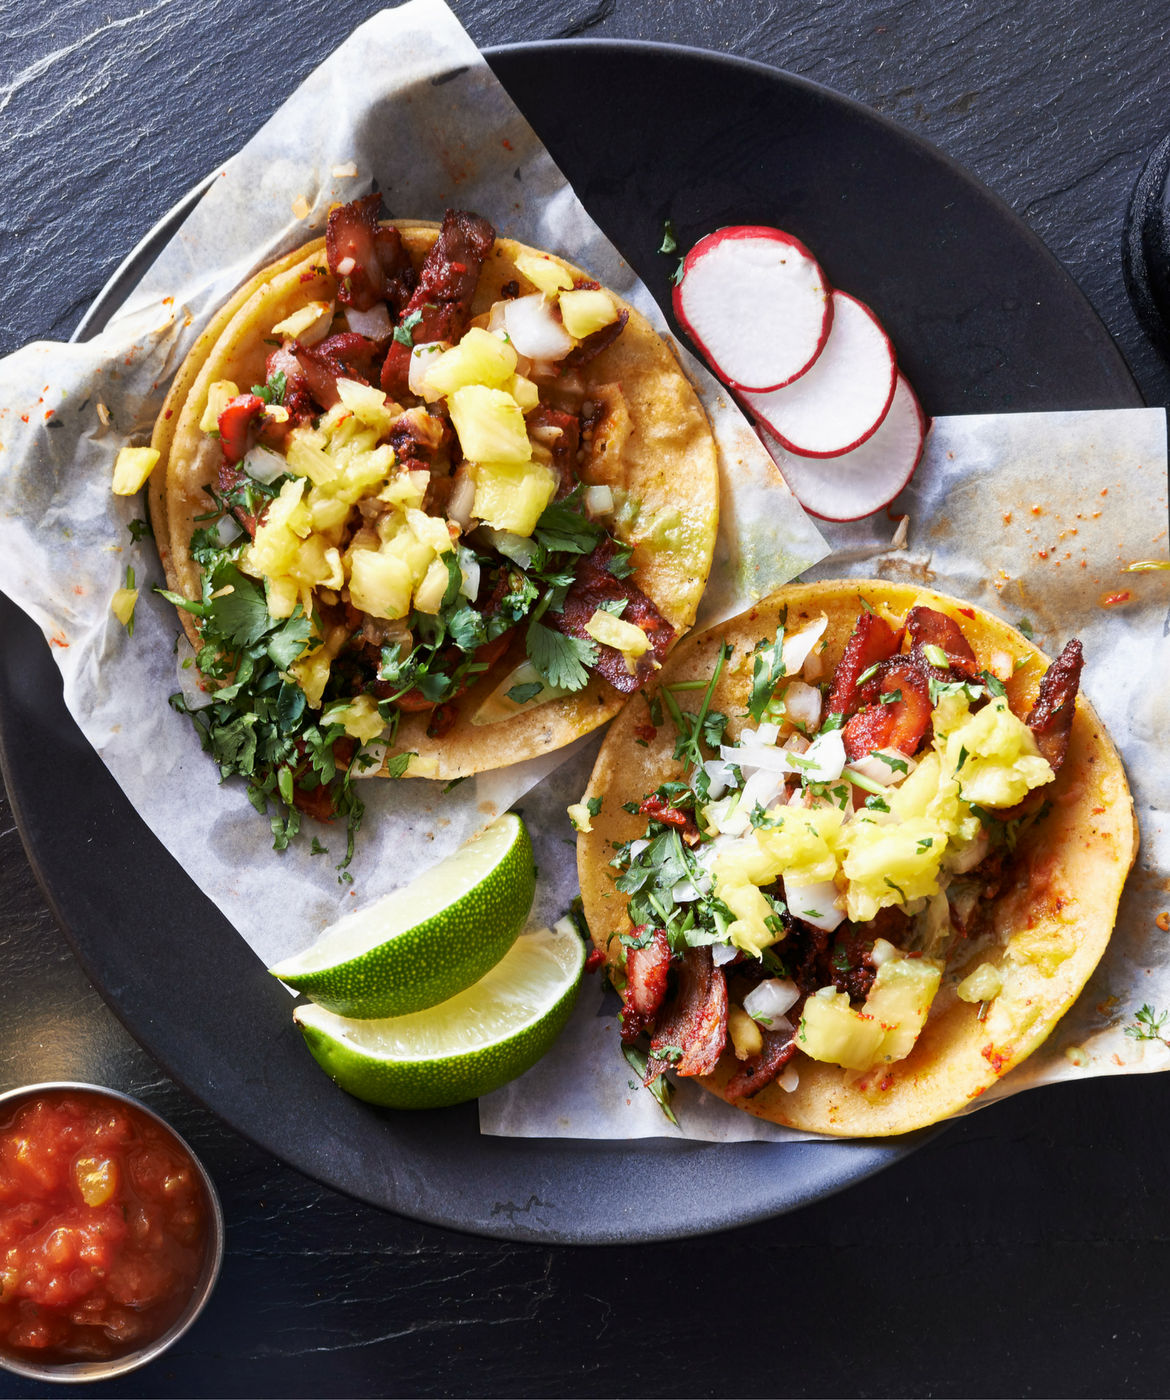 Breakfast Tacos with Hatch Chile Salsa